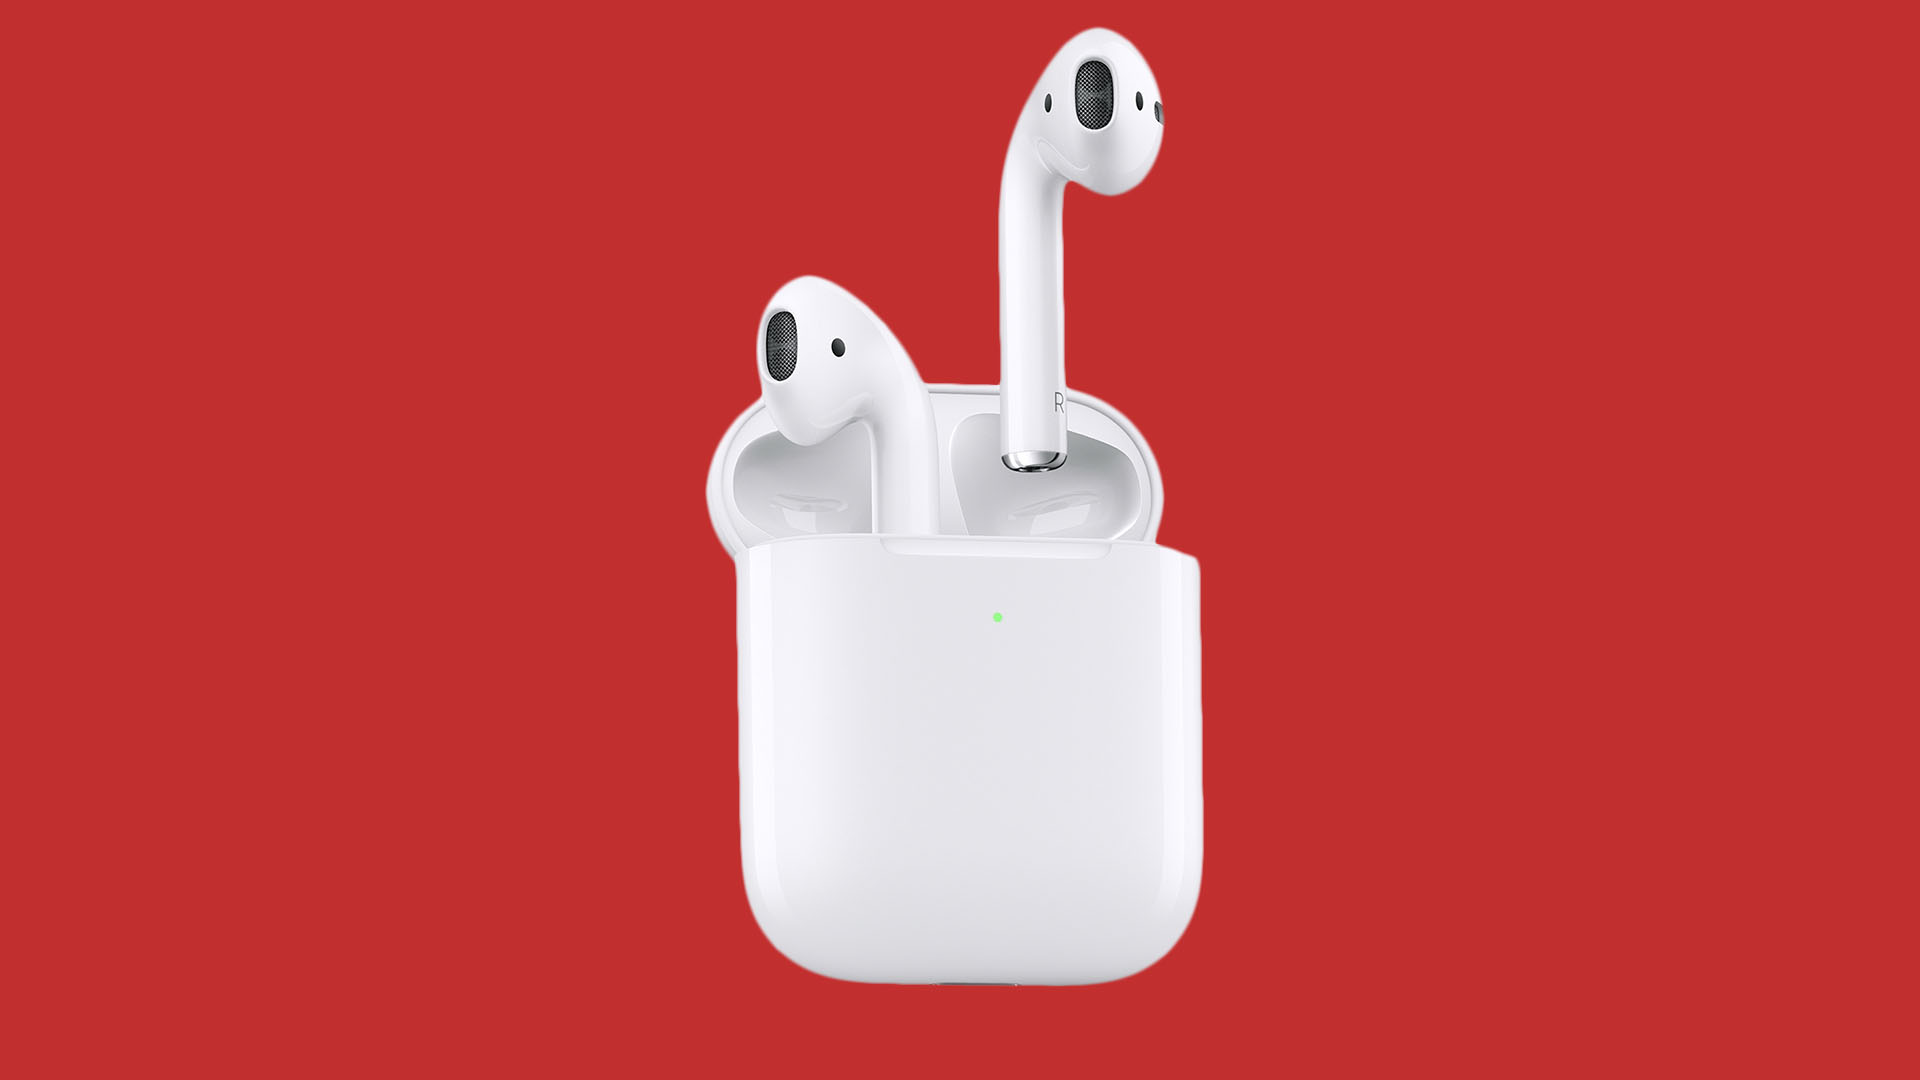 AirPods 3 Release Date, Price, Specs, Features Everything we Know about Apple's Next Wireless Earbuds